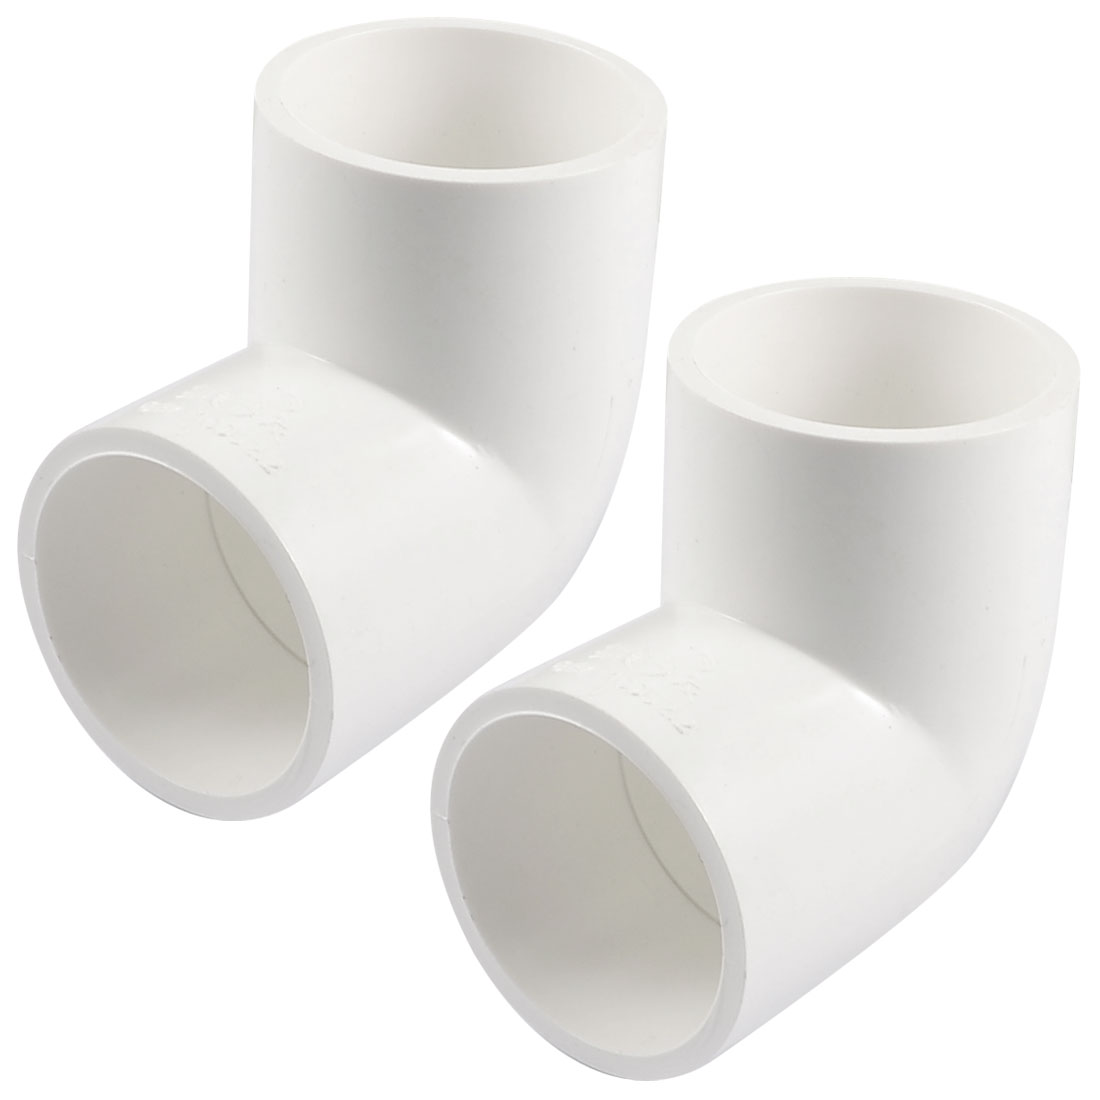 PVC-U 40mm Drainage Pipe Adapter Connector 90 Degree Elbow White 2 Pcs